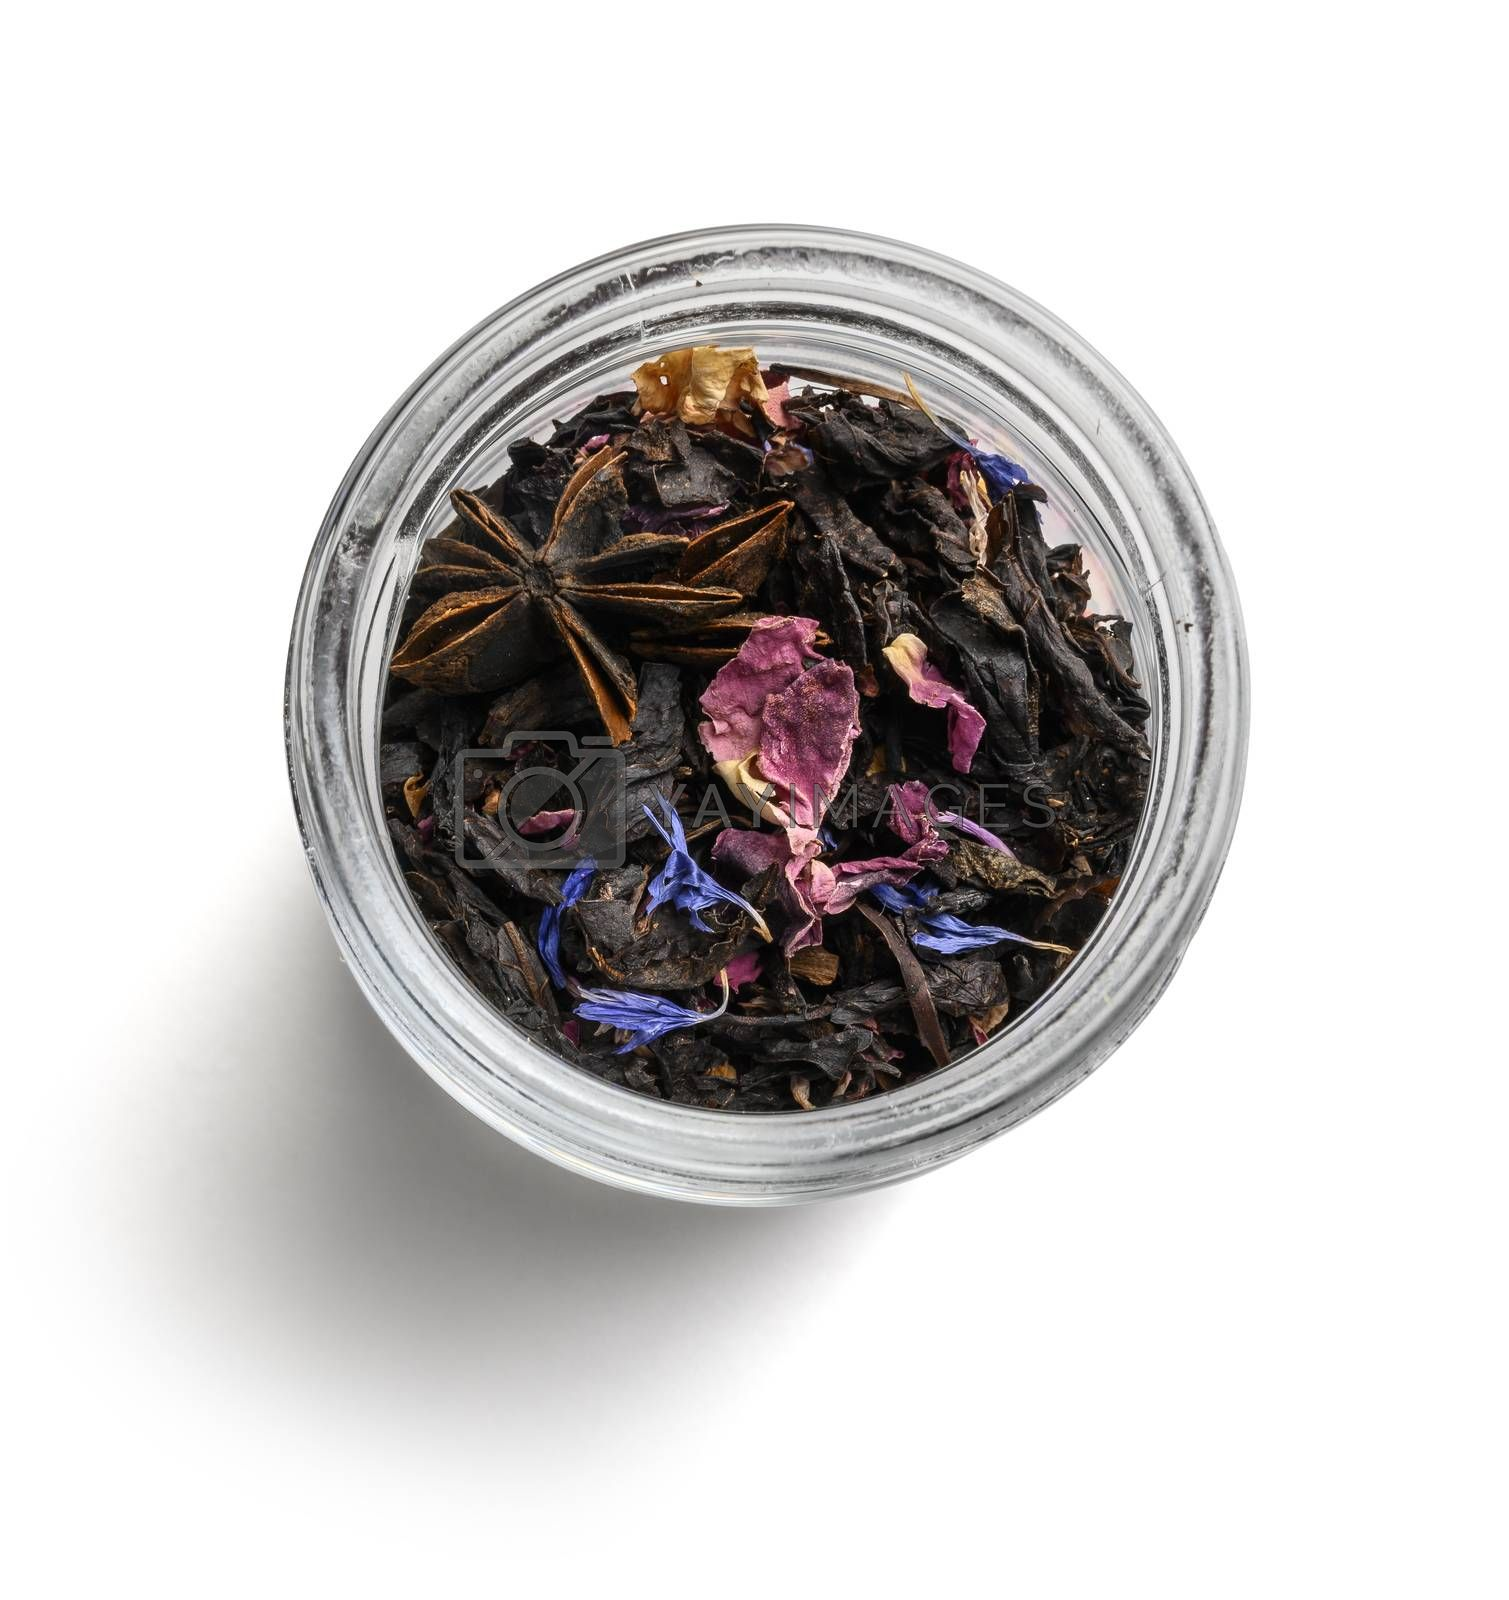 Black tea with natural aromatic additives. Top view on white background by butenkow